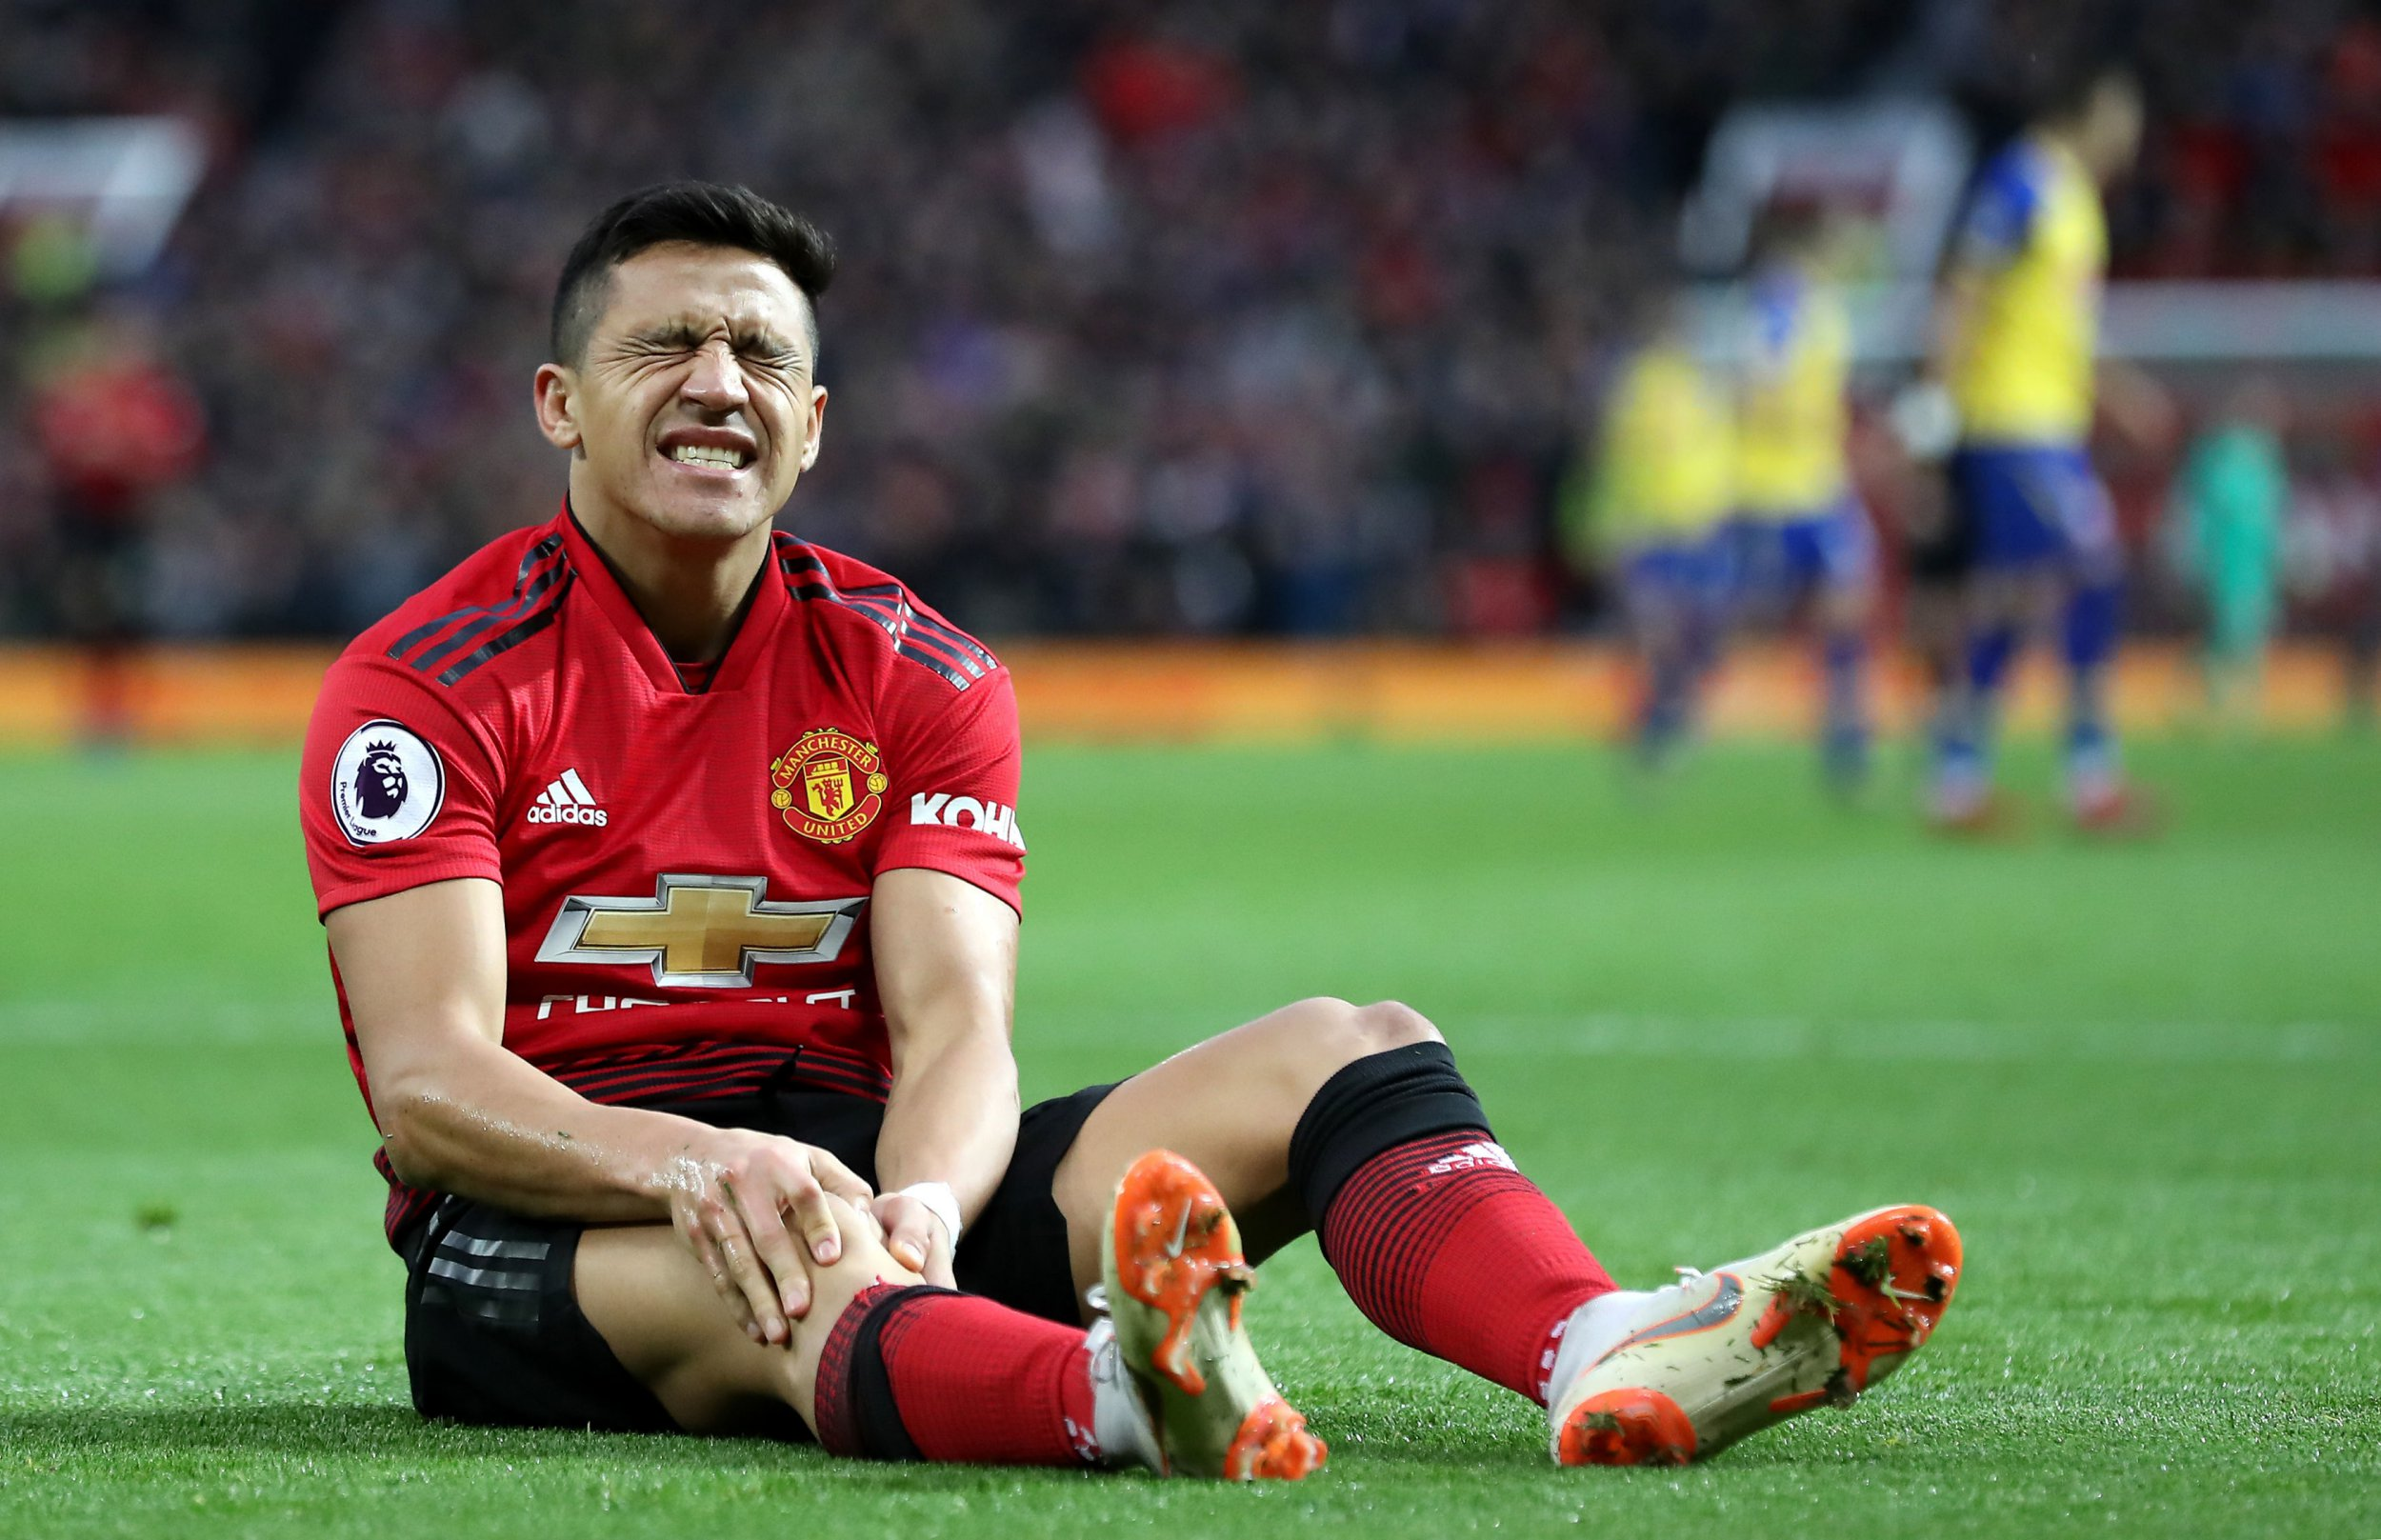 Solskjaer provides worrying Alexis Sanchez injury update after Man Utd beat Southampton